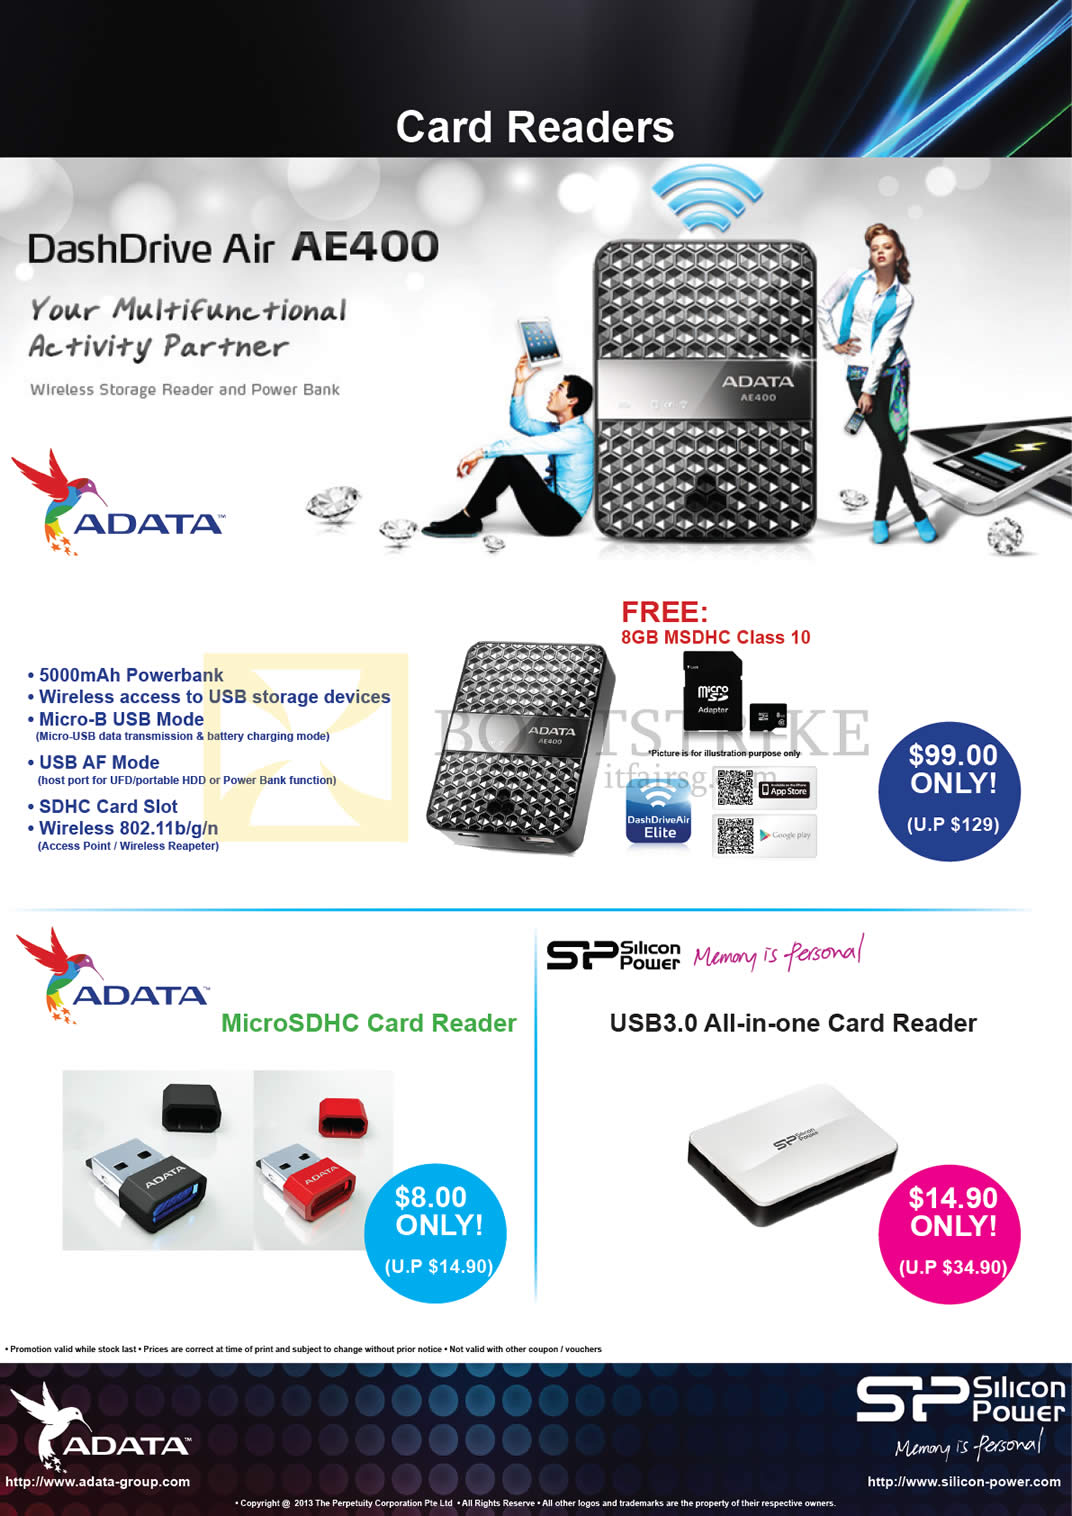 COMEX 2013 price list image brochure of The Perpetuity Silicon Power Adata DashDrive Air AE400 Power Bank External Charger, MicroSDHC Card Reader, USB